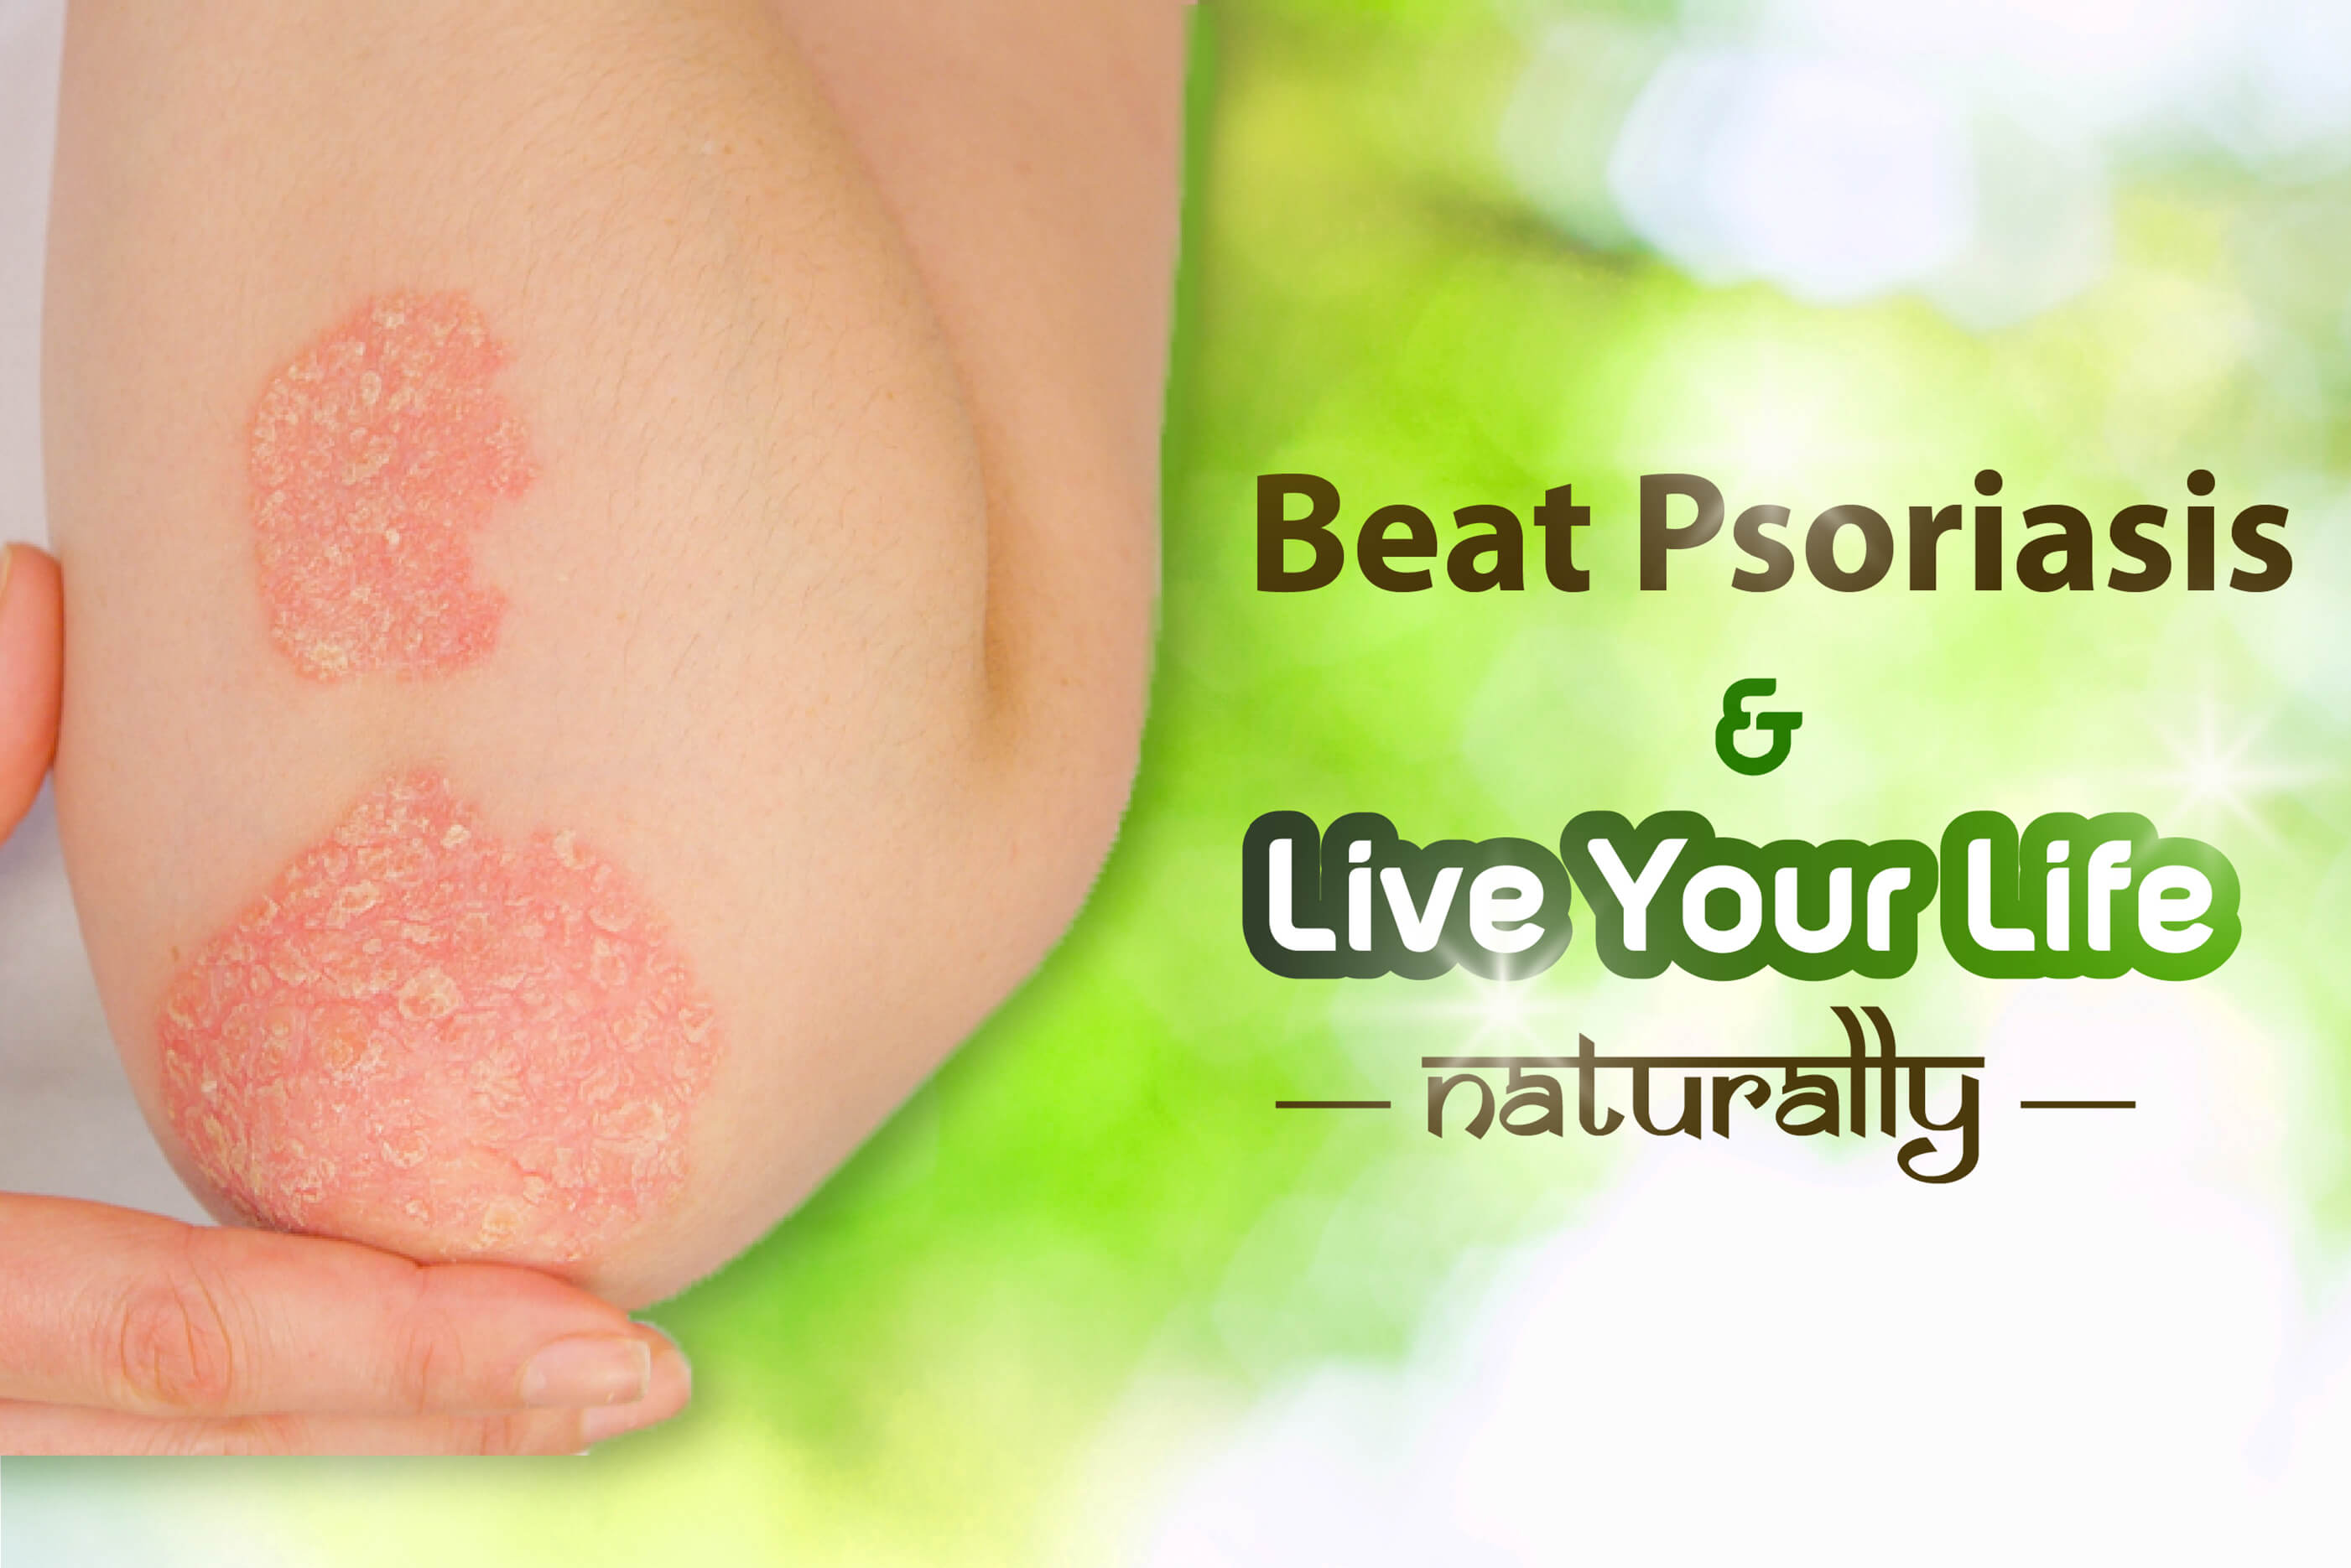 Psoriasis: What it is and How Ayurveda Helps Treat it